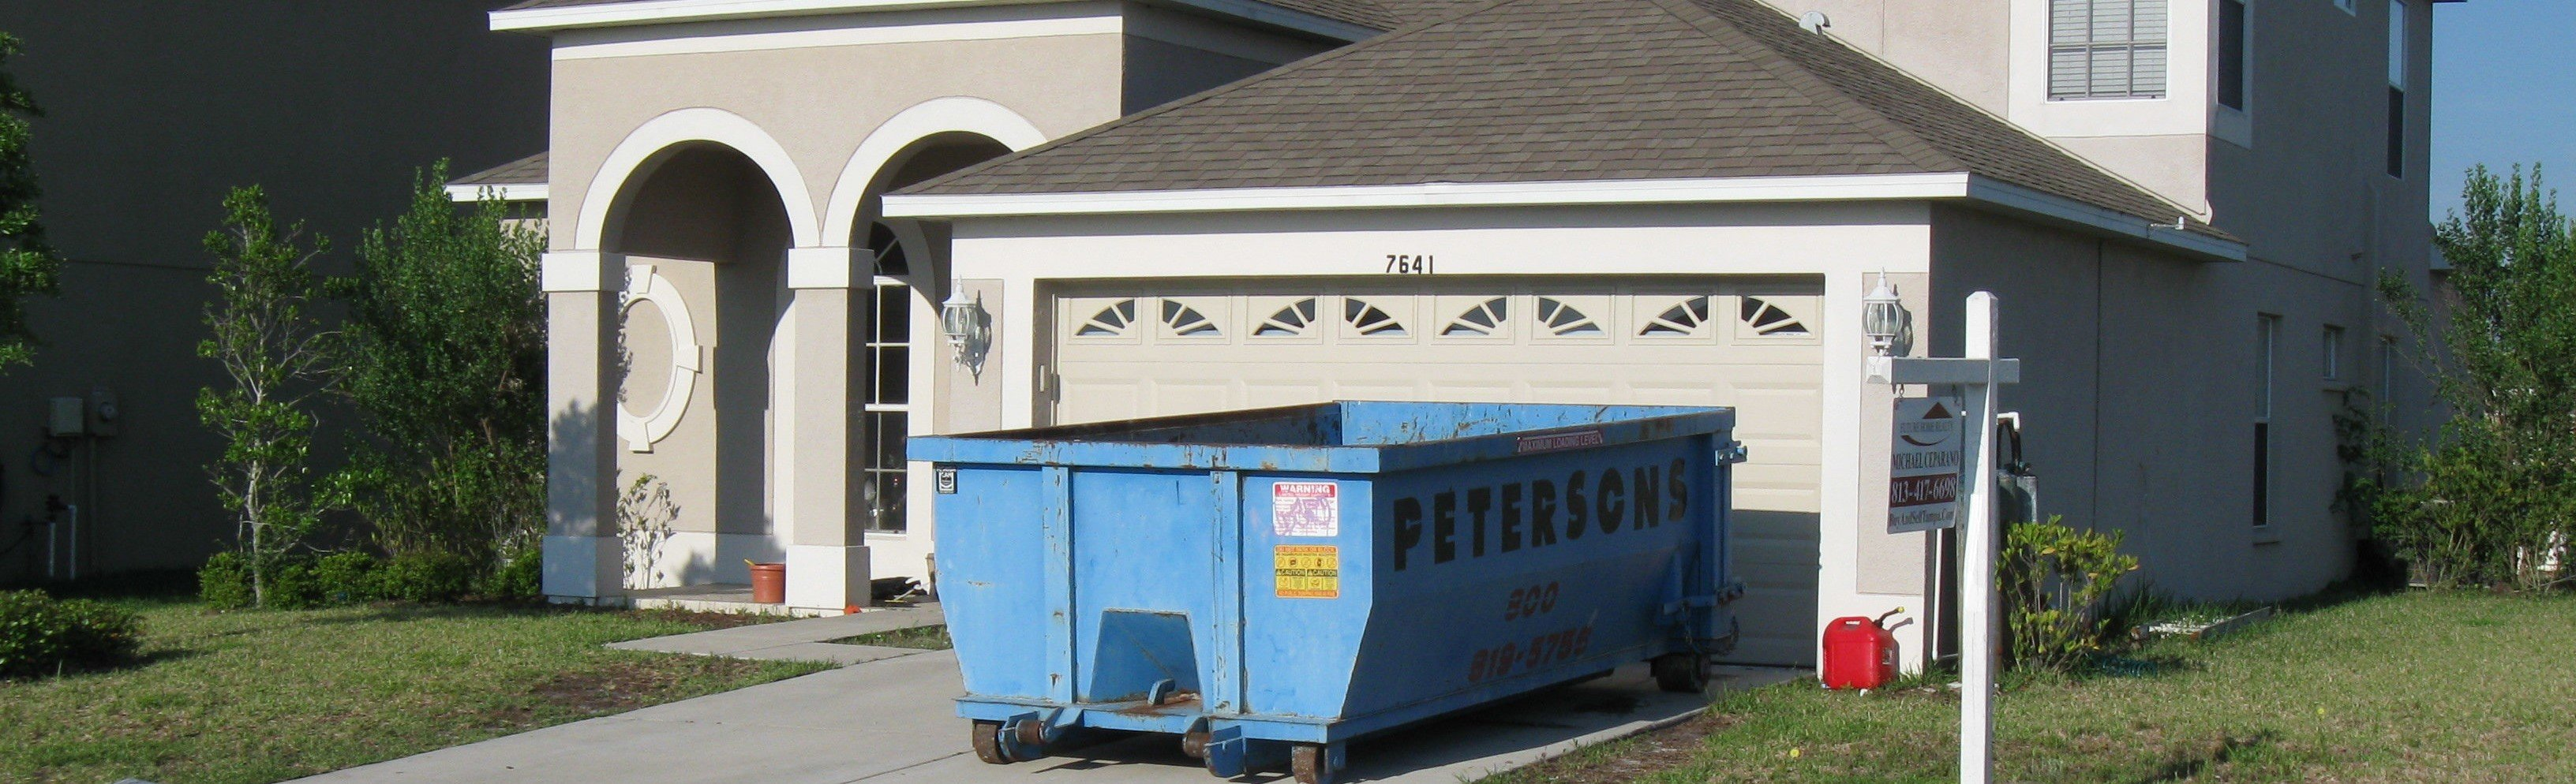 Residential Dumpster Rentals Elfers